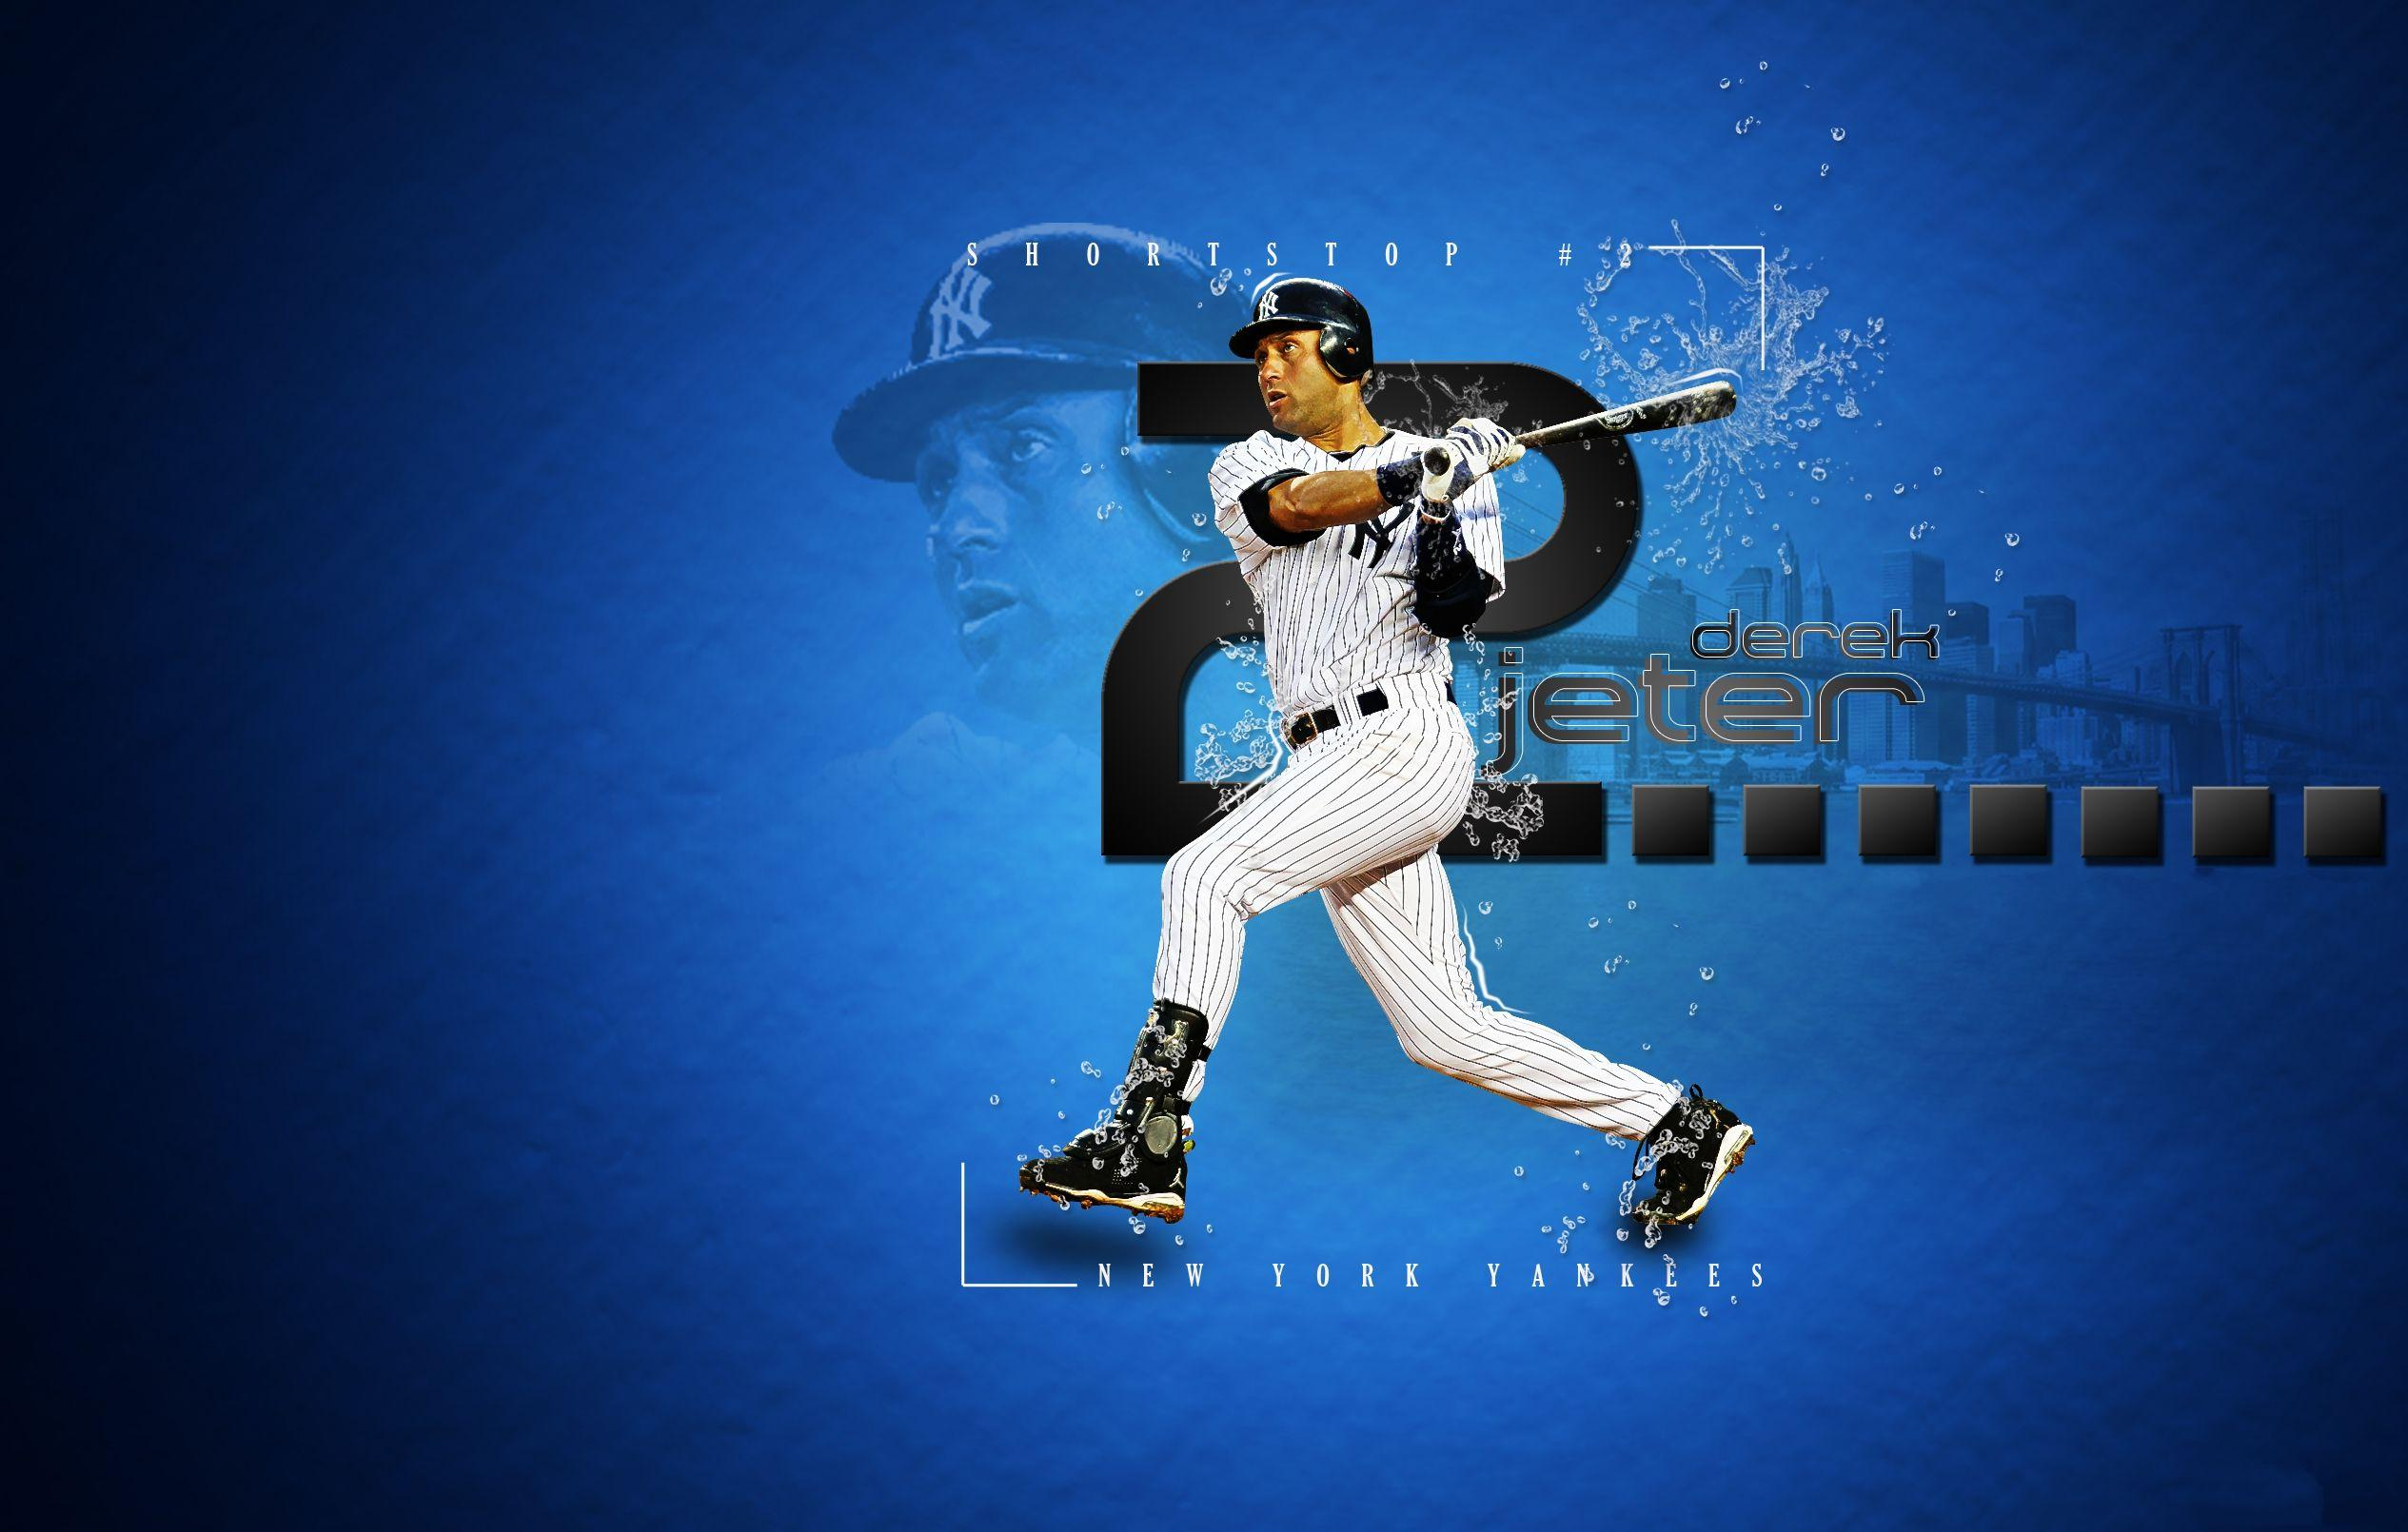 Free Download HD Pittsburgh Pirates Wallpapers - wallpaper.wiki